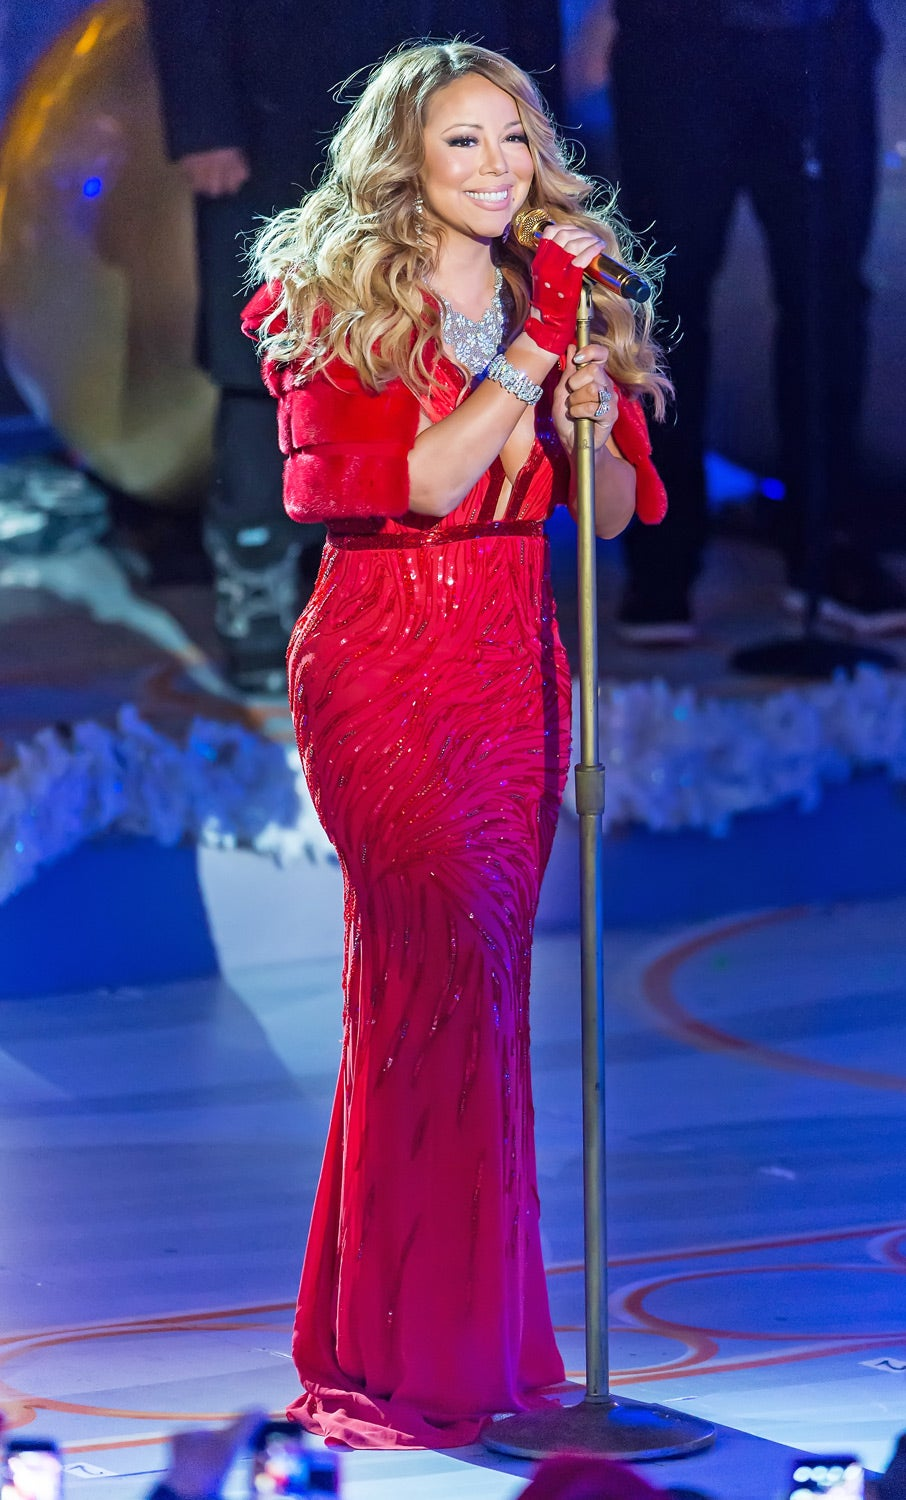 Mariah Carey, Trey Songz, Questlove to Ring in the Holidays at Macy's Thanksgiving Parade